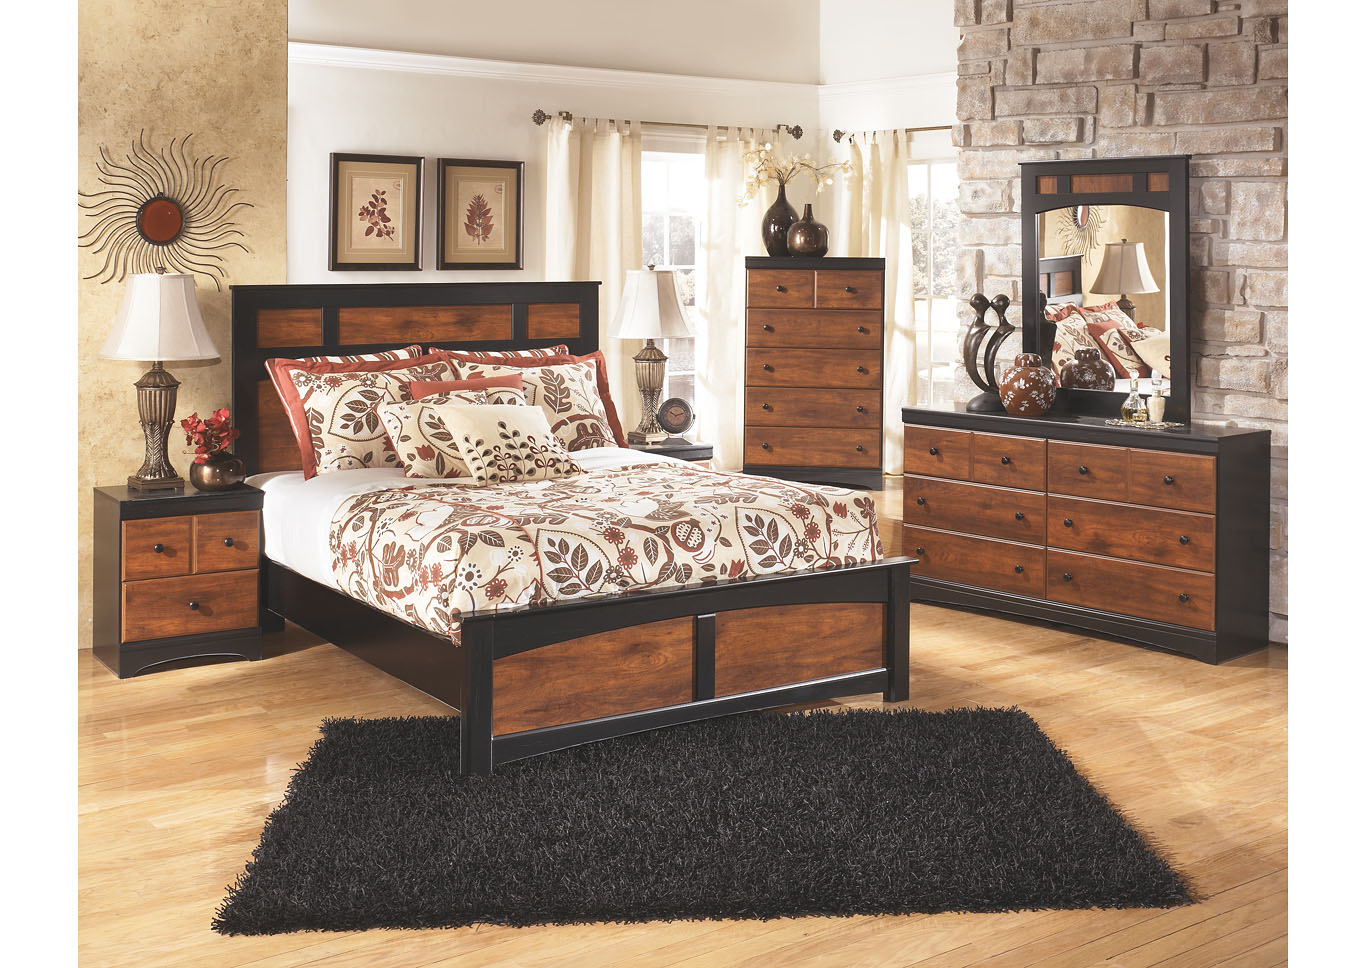 Aimwell Full Panel Bed w/Dresser, Mirror, Drawer Chest & Nightstand,Signature Design By Ashley